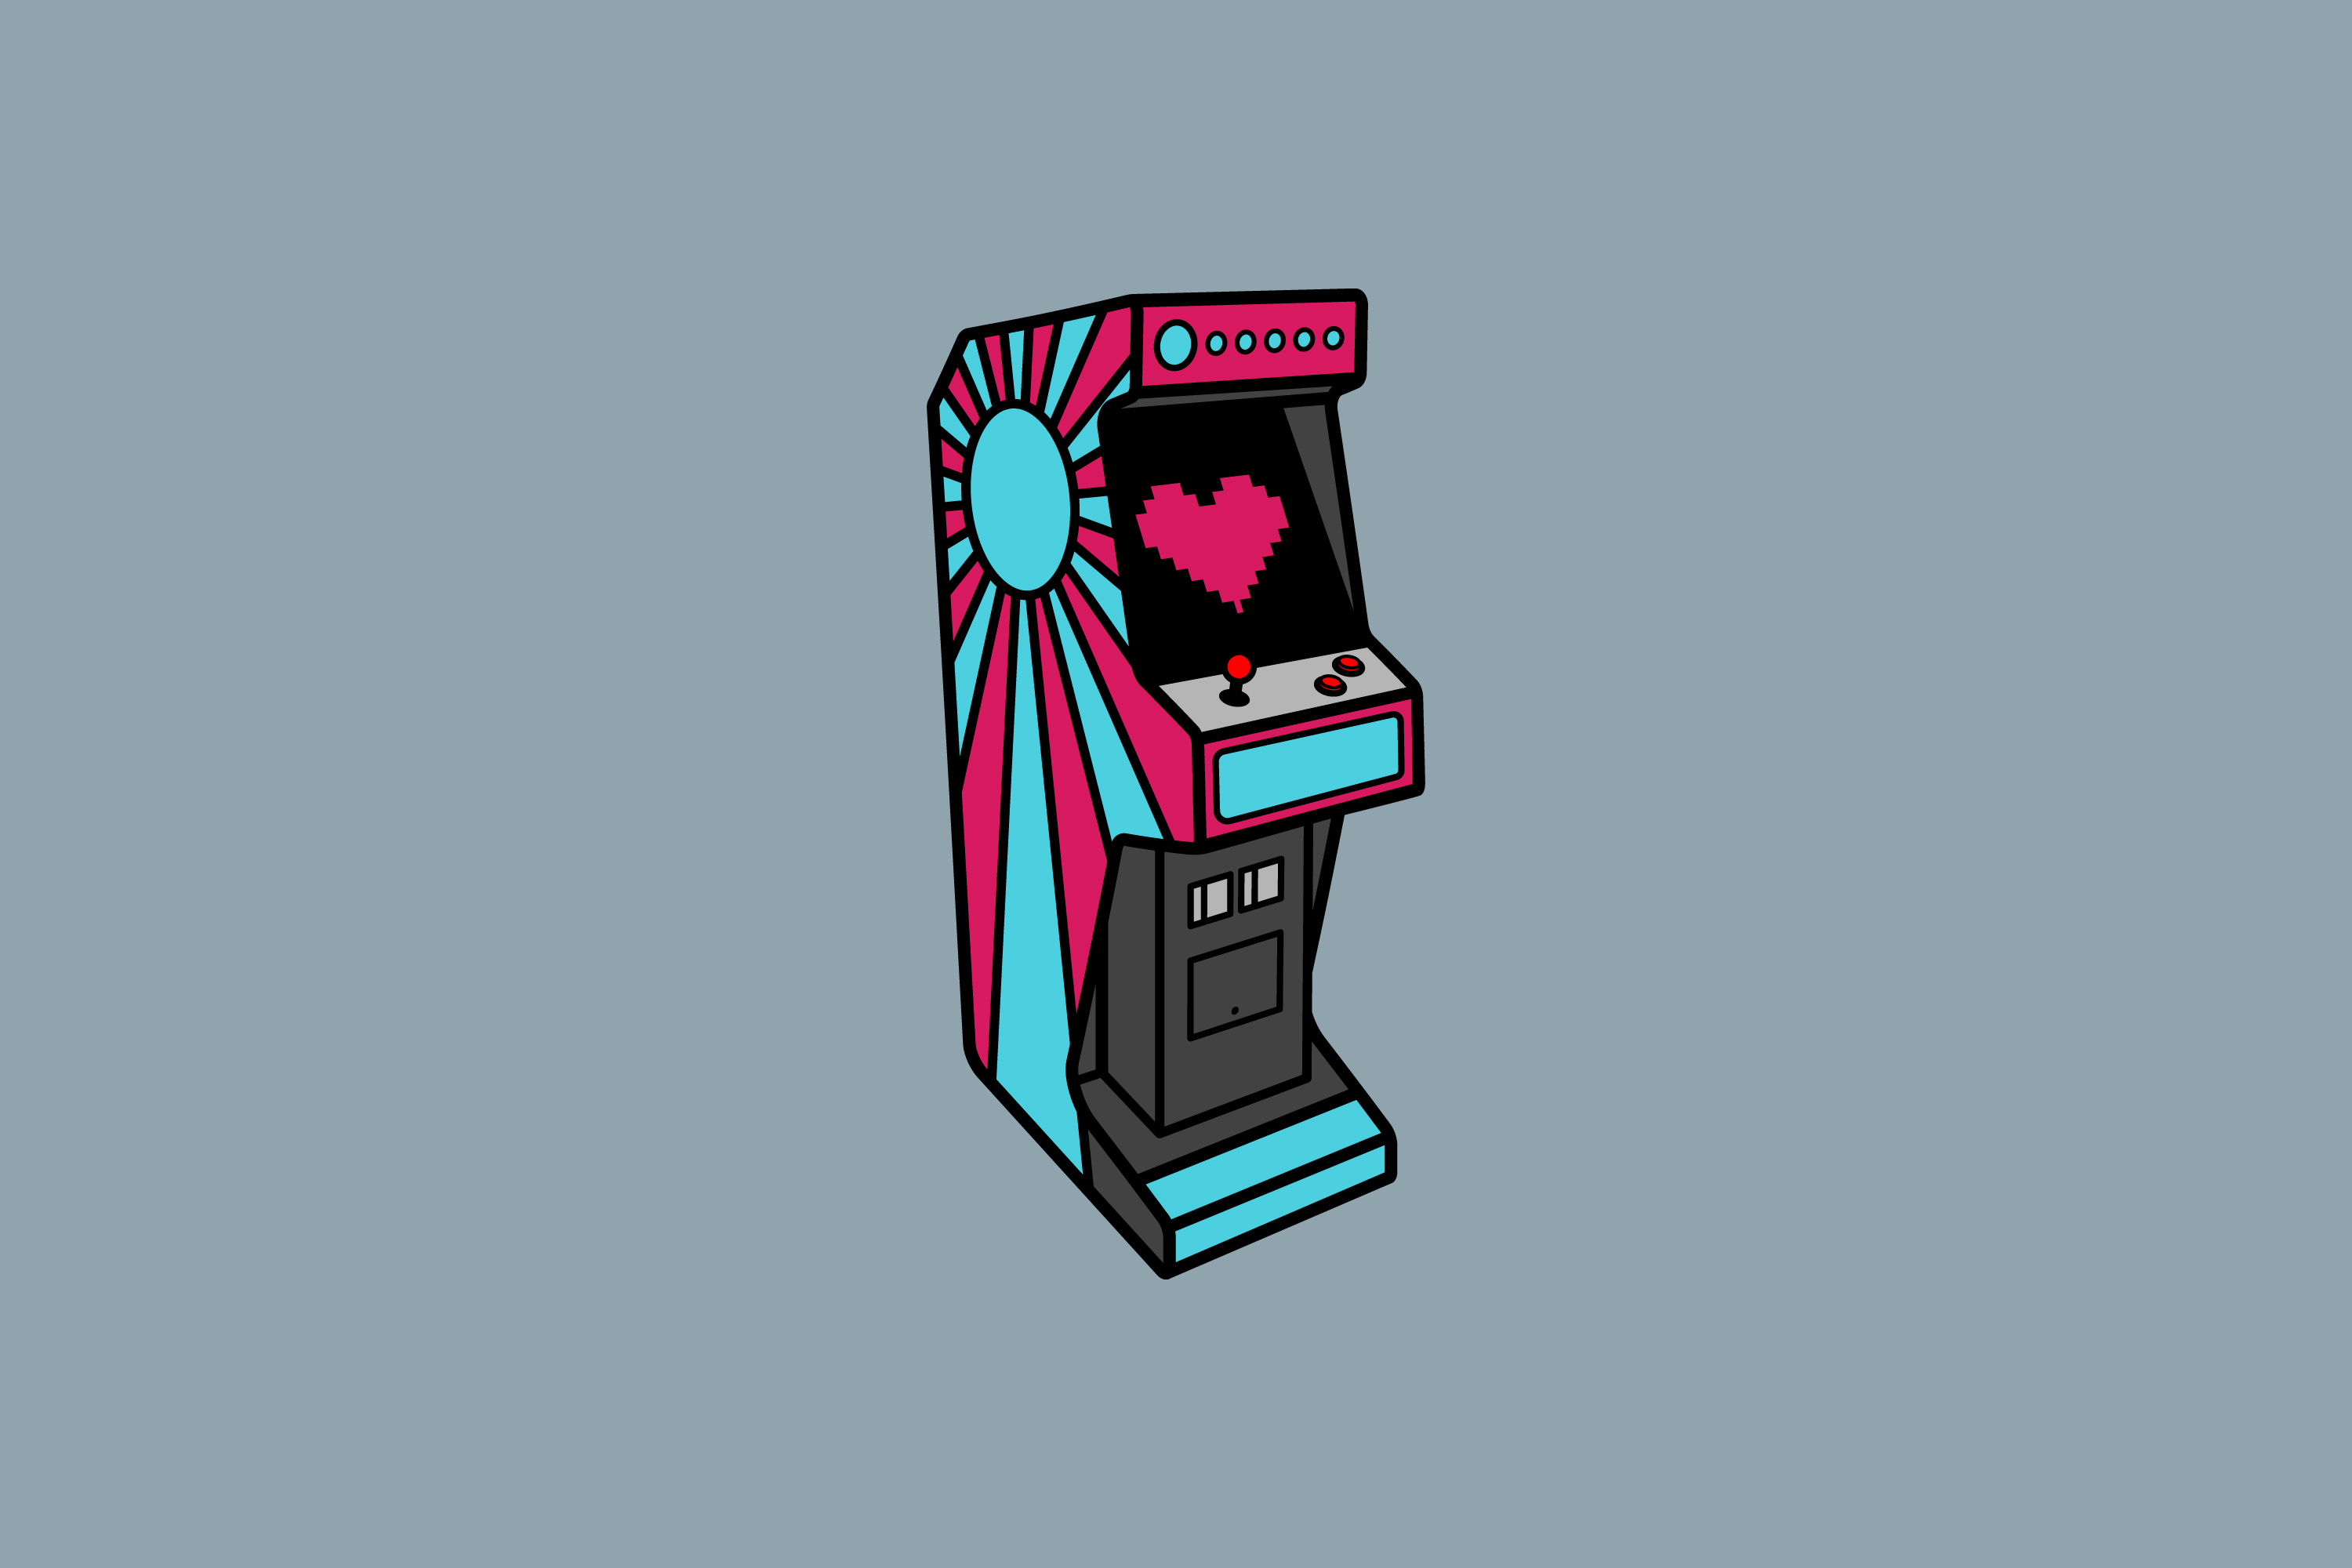 Illustration of an Arcade Machine